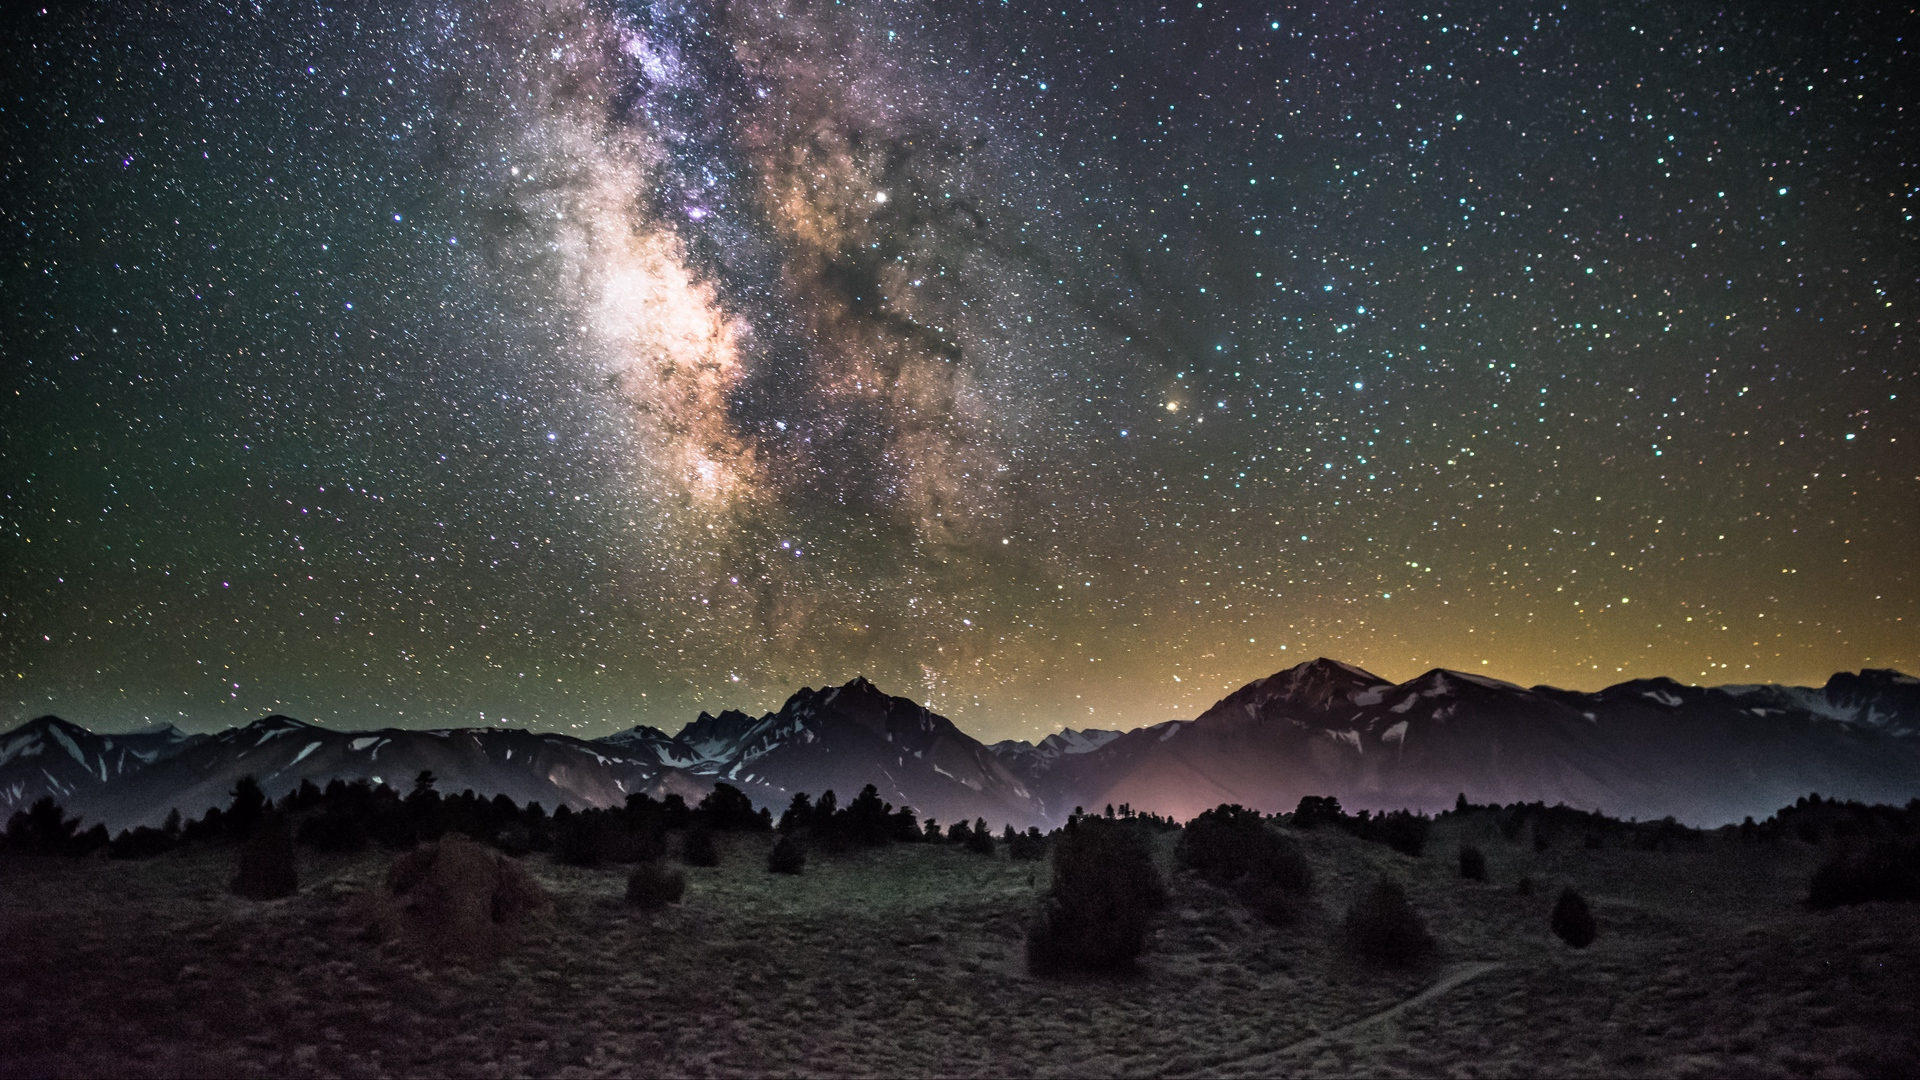 Wallpaper Galaxy Night Starry Sky Mountains Galaxy Desktop Wallpaper 4k 1920x1080 Wallpaper Teahub Io